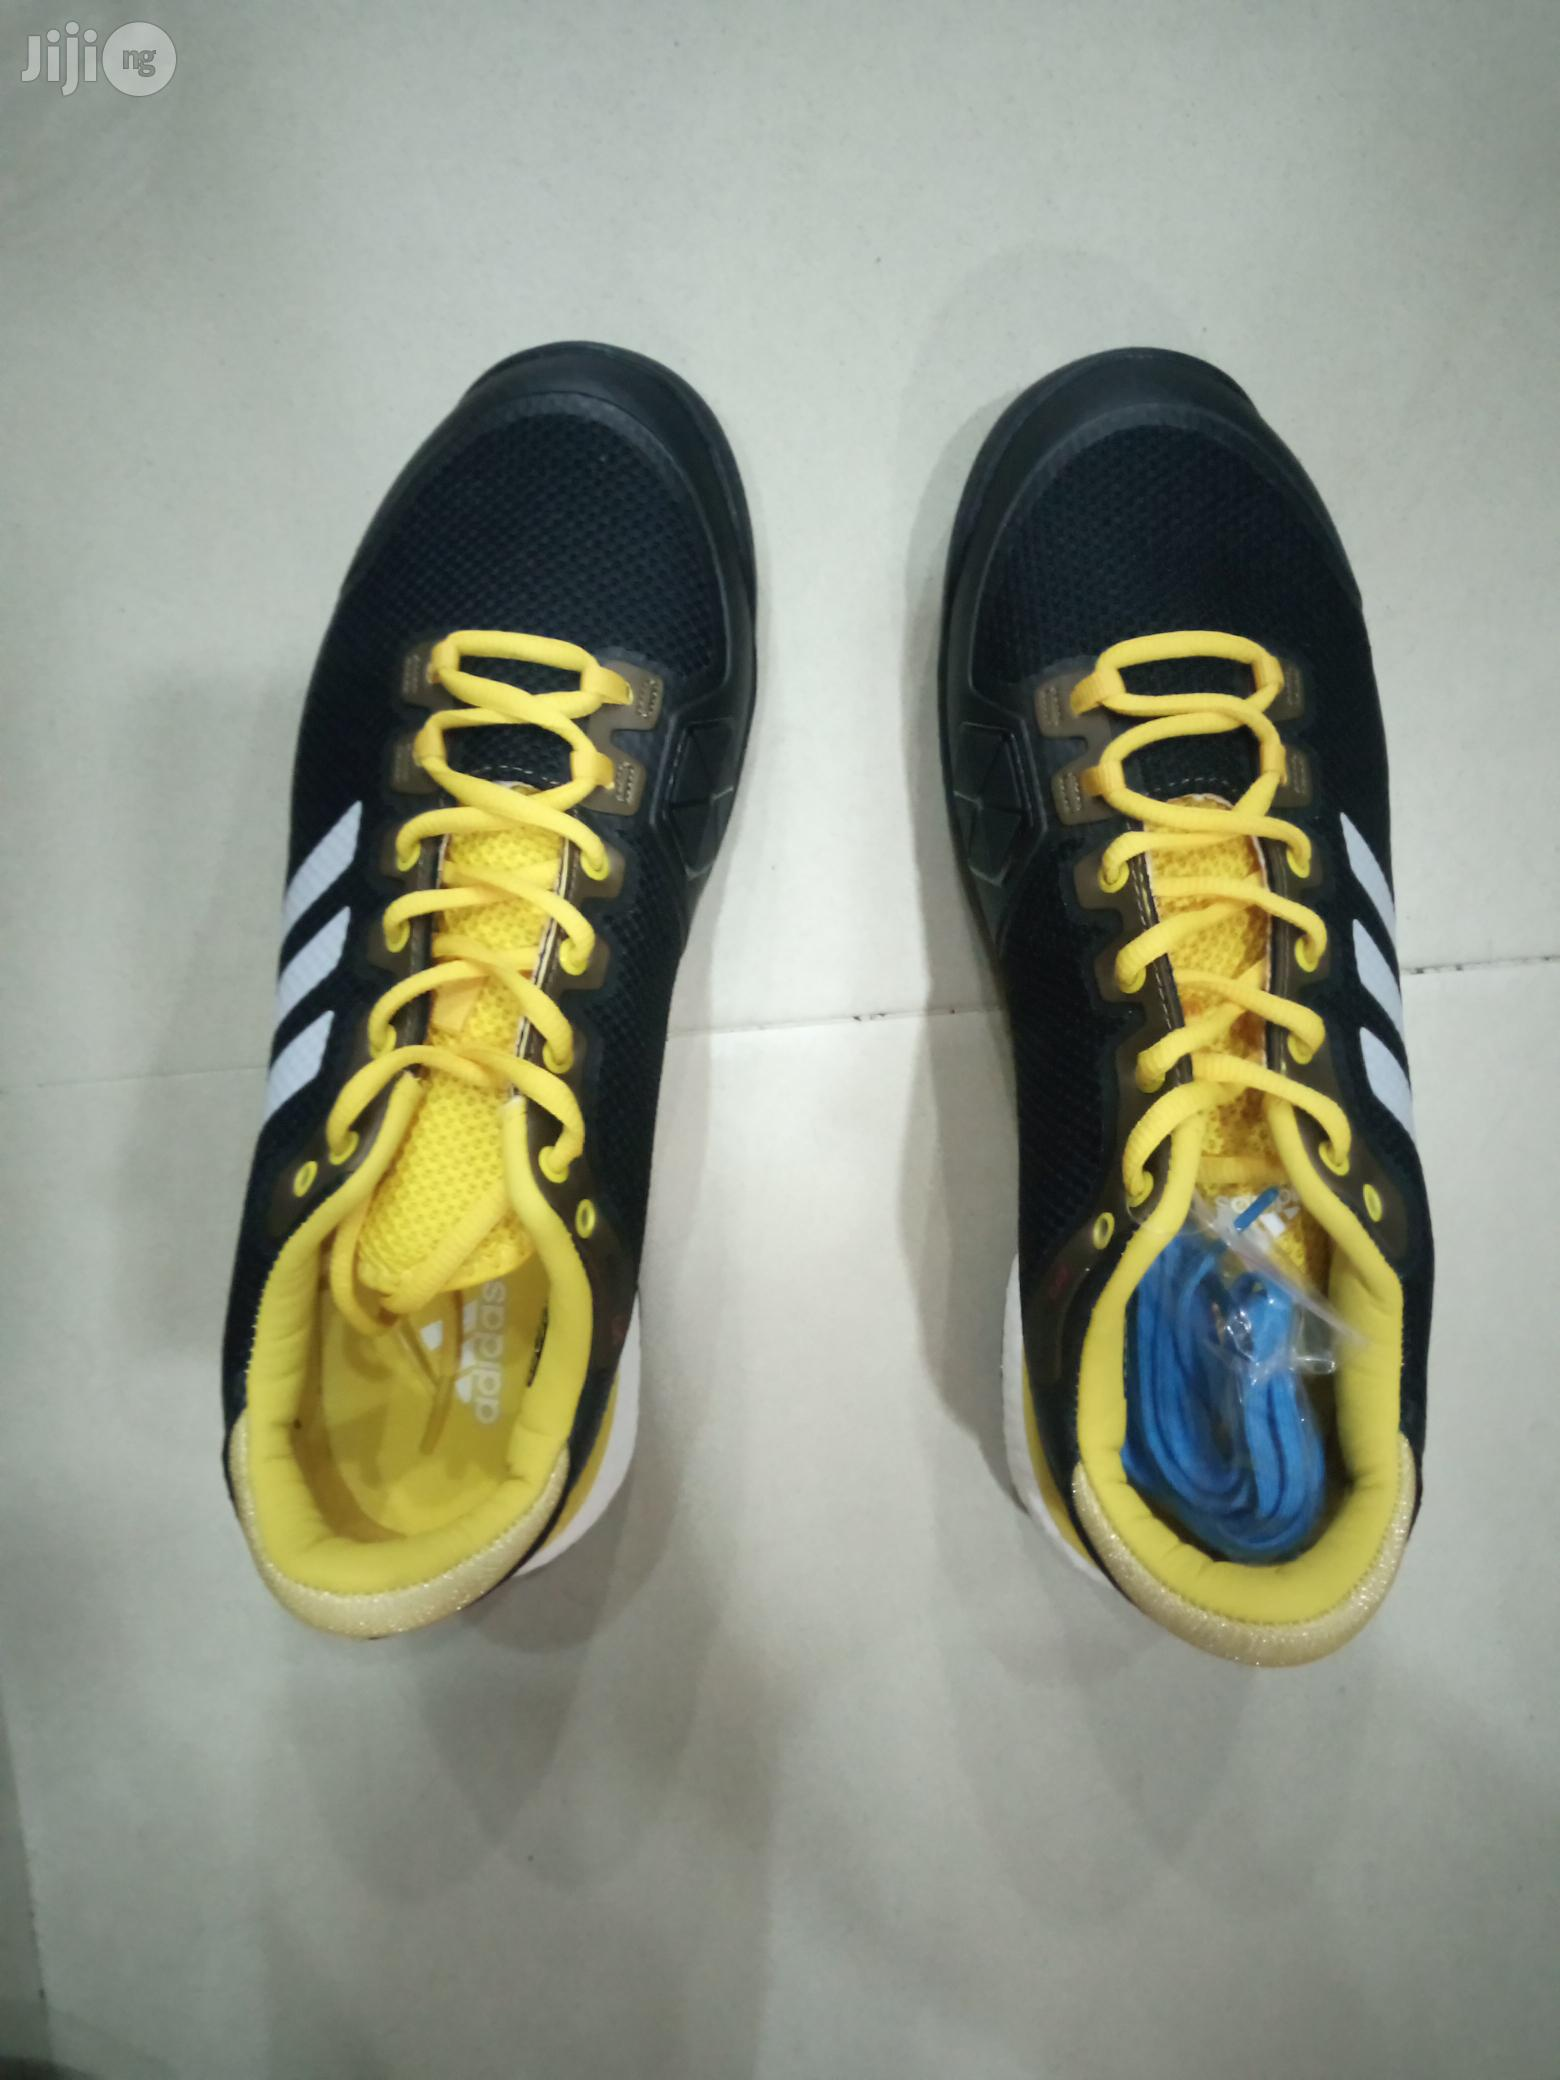 Addidas Lawn Tennis Canvas   Shoes for sale in Surulere, Lagos State, Nigeria